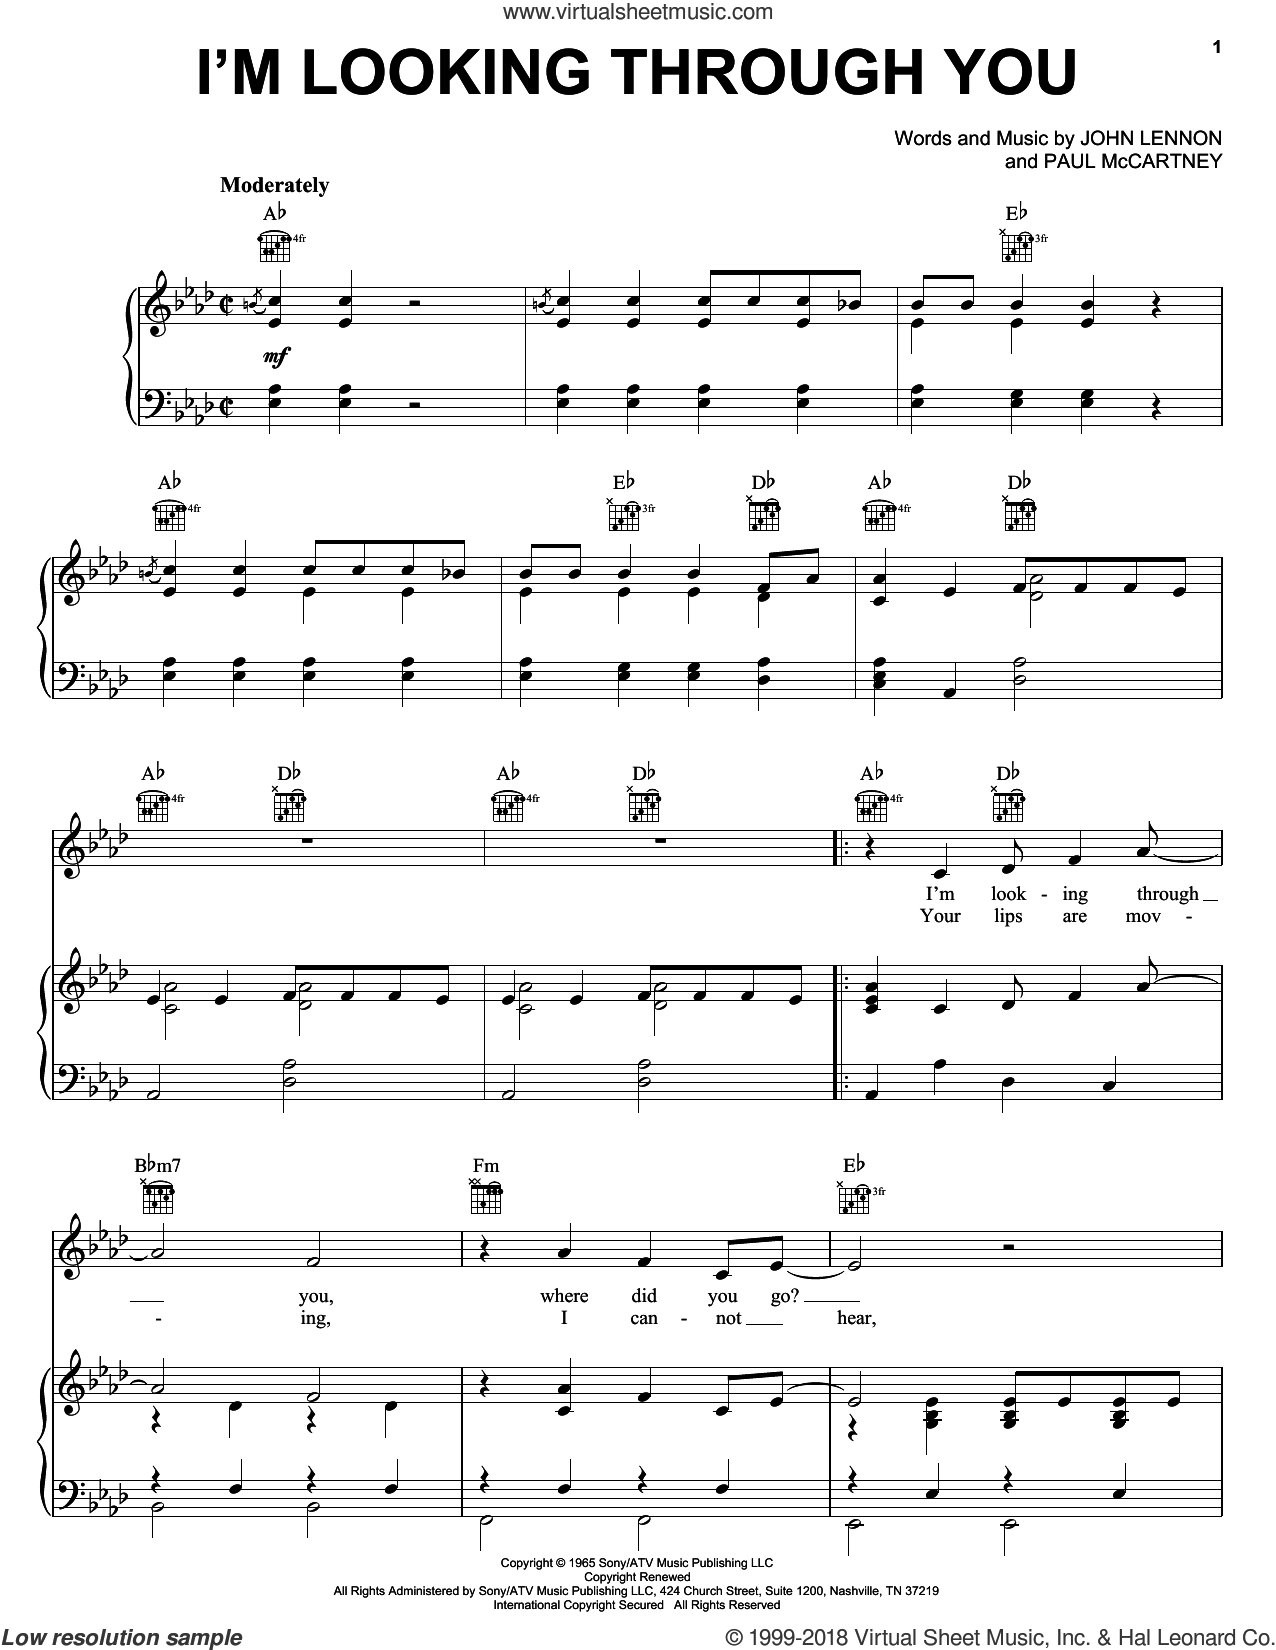 I'm Looking Through You sheet music for voice, piano or guitar by The Beatles, John Lennon and Paul McCartney, intermediate skill level